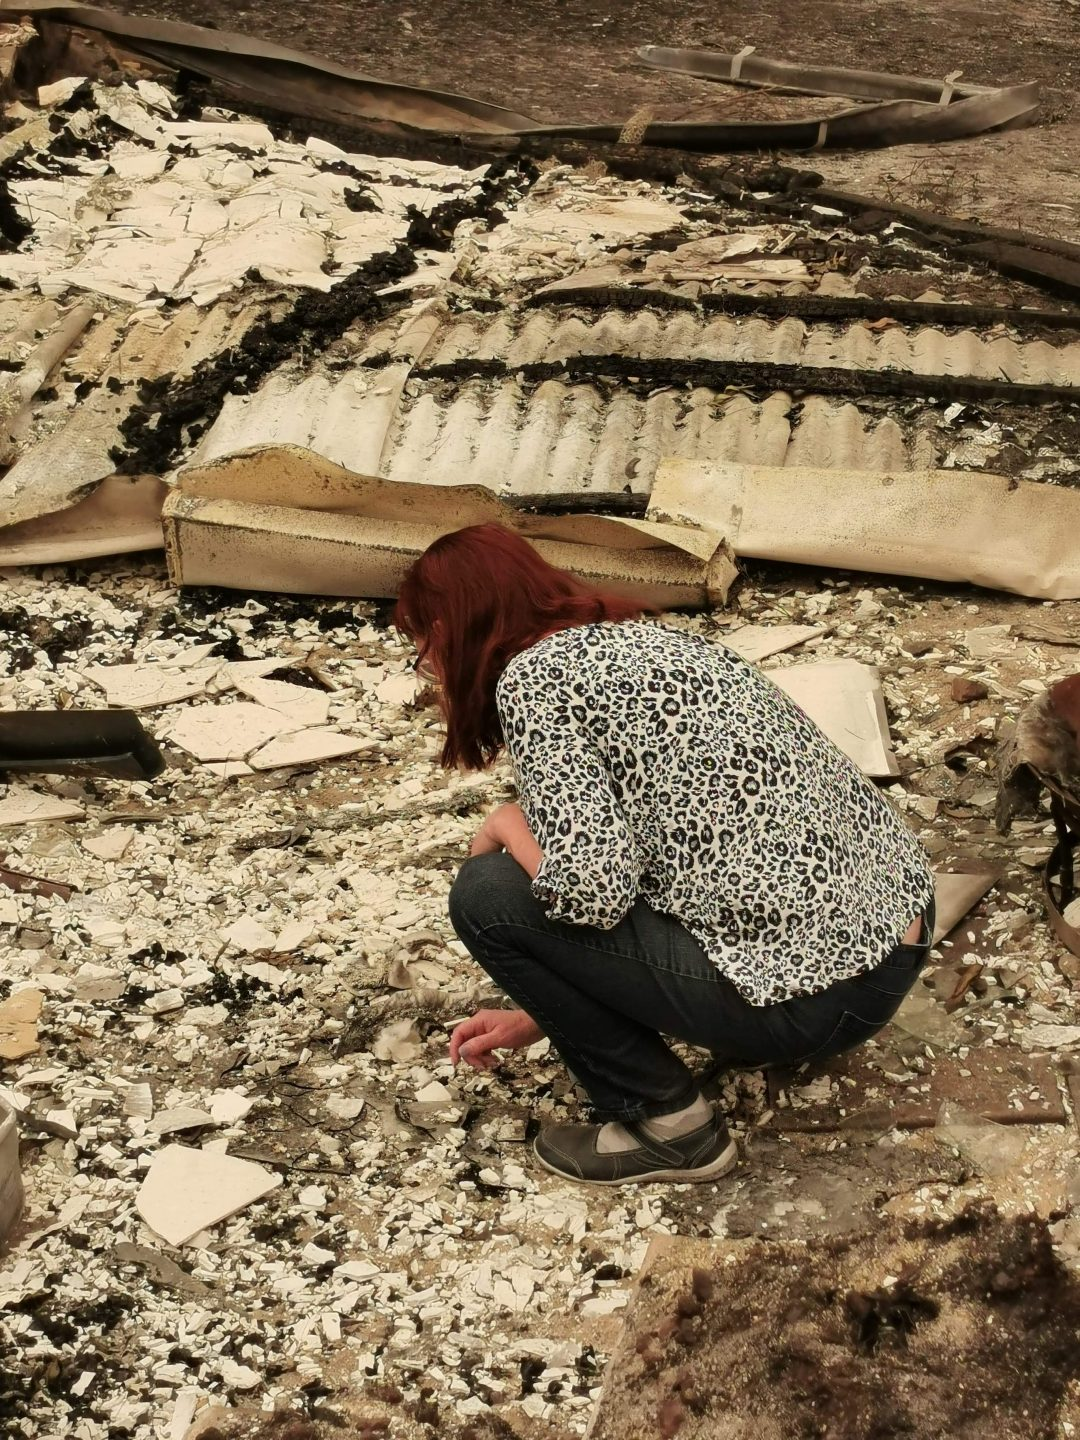 A woman squatting down over rubble from an extinguished bush fire.